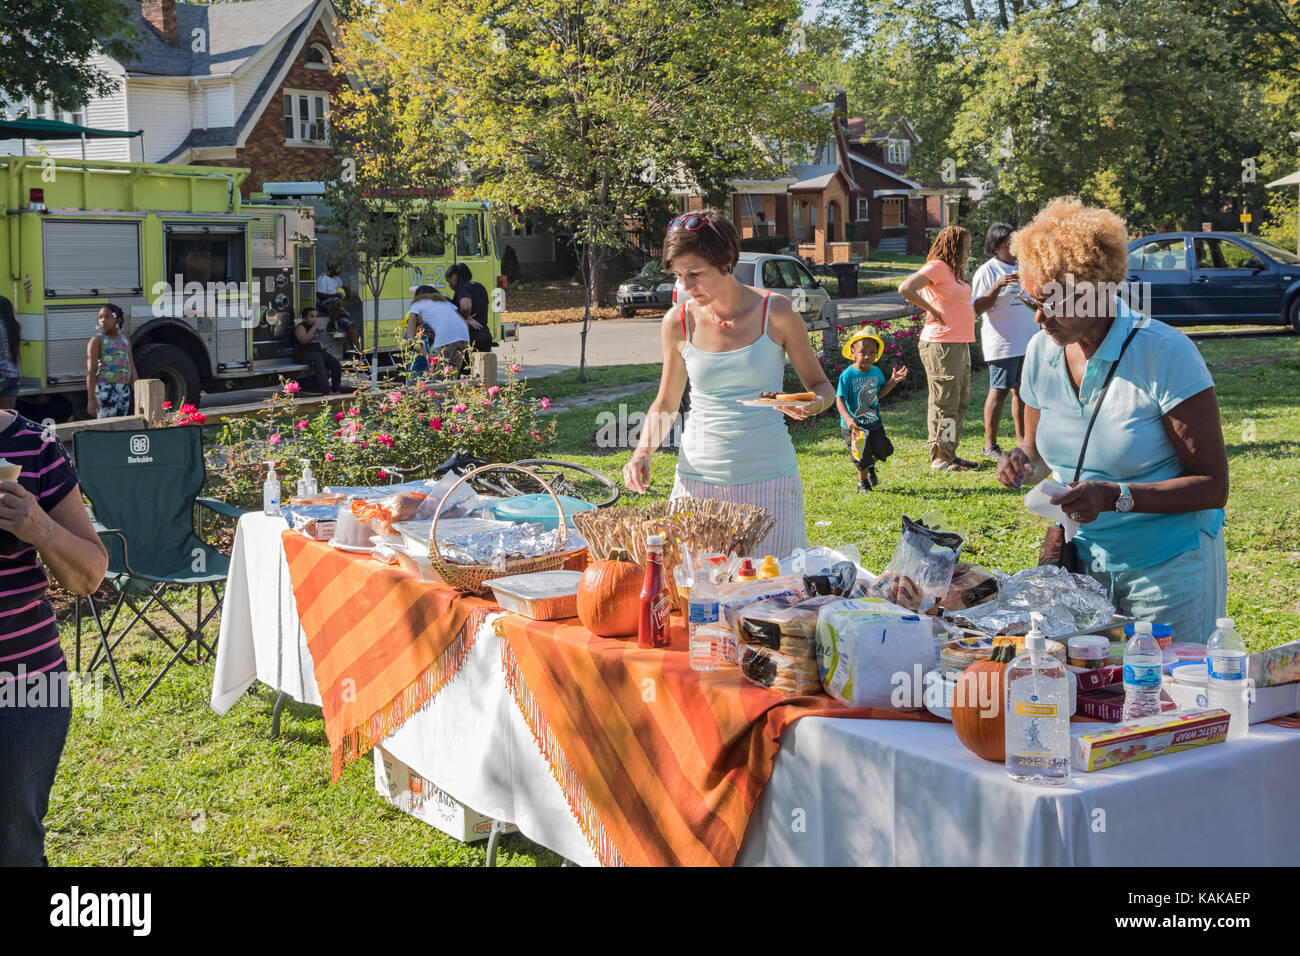 Detroit, Michigan - Neighbors at the food table during a block party in the Morningside neighborhood. - Stock Image